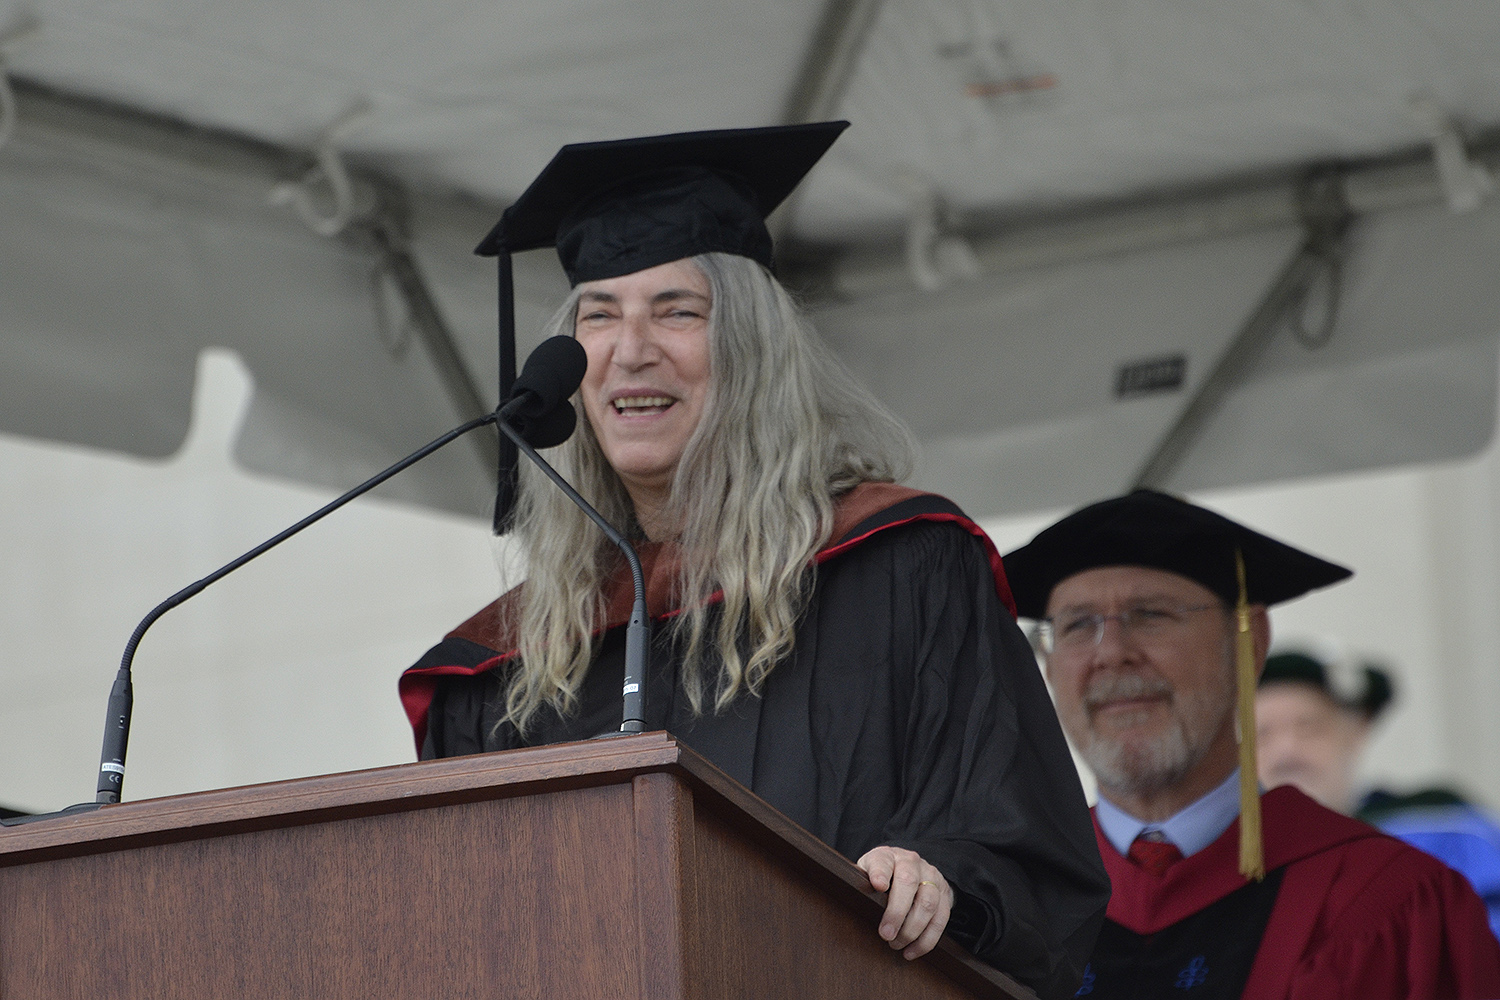 Patti Smith delivers remarks at Commencement. (Photo by John Van Vlack)